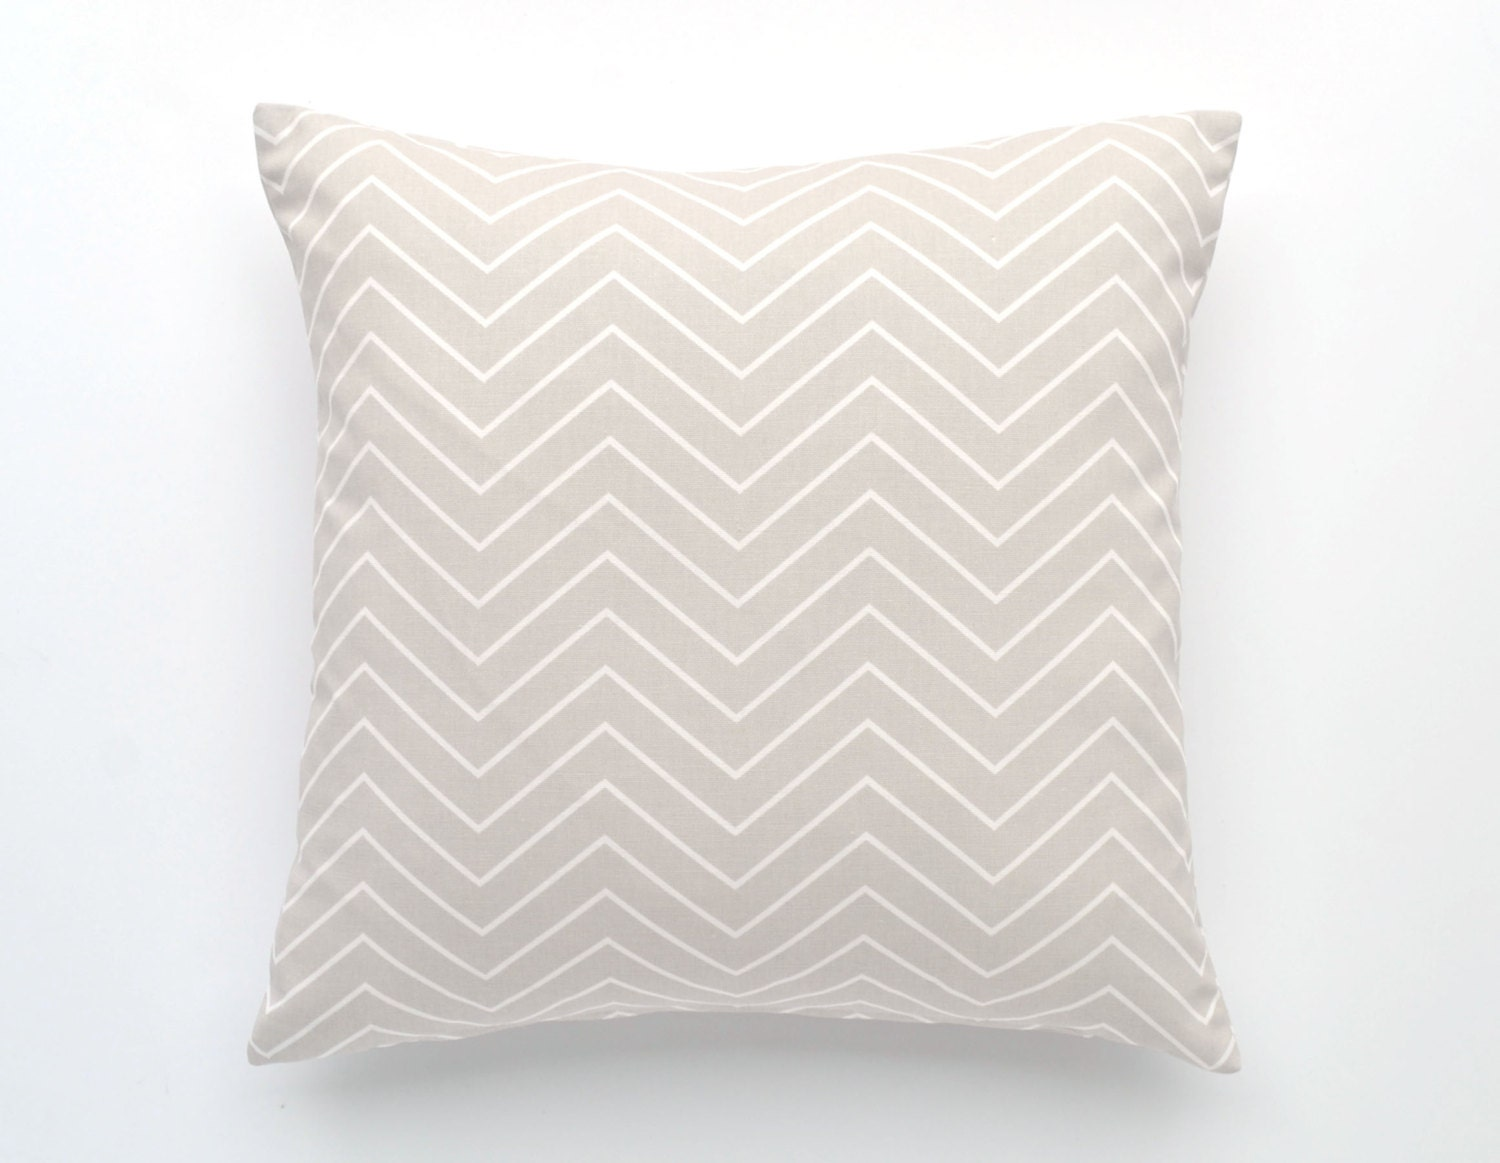 Throw Pillow Covers 20 X 20 : Chevron Pillow Cover- 20 x 20 - Light Gray and White Chevron, - Chevron Throw Pillow, Decorative ...